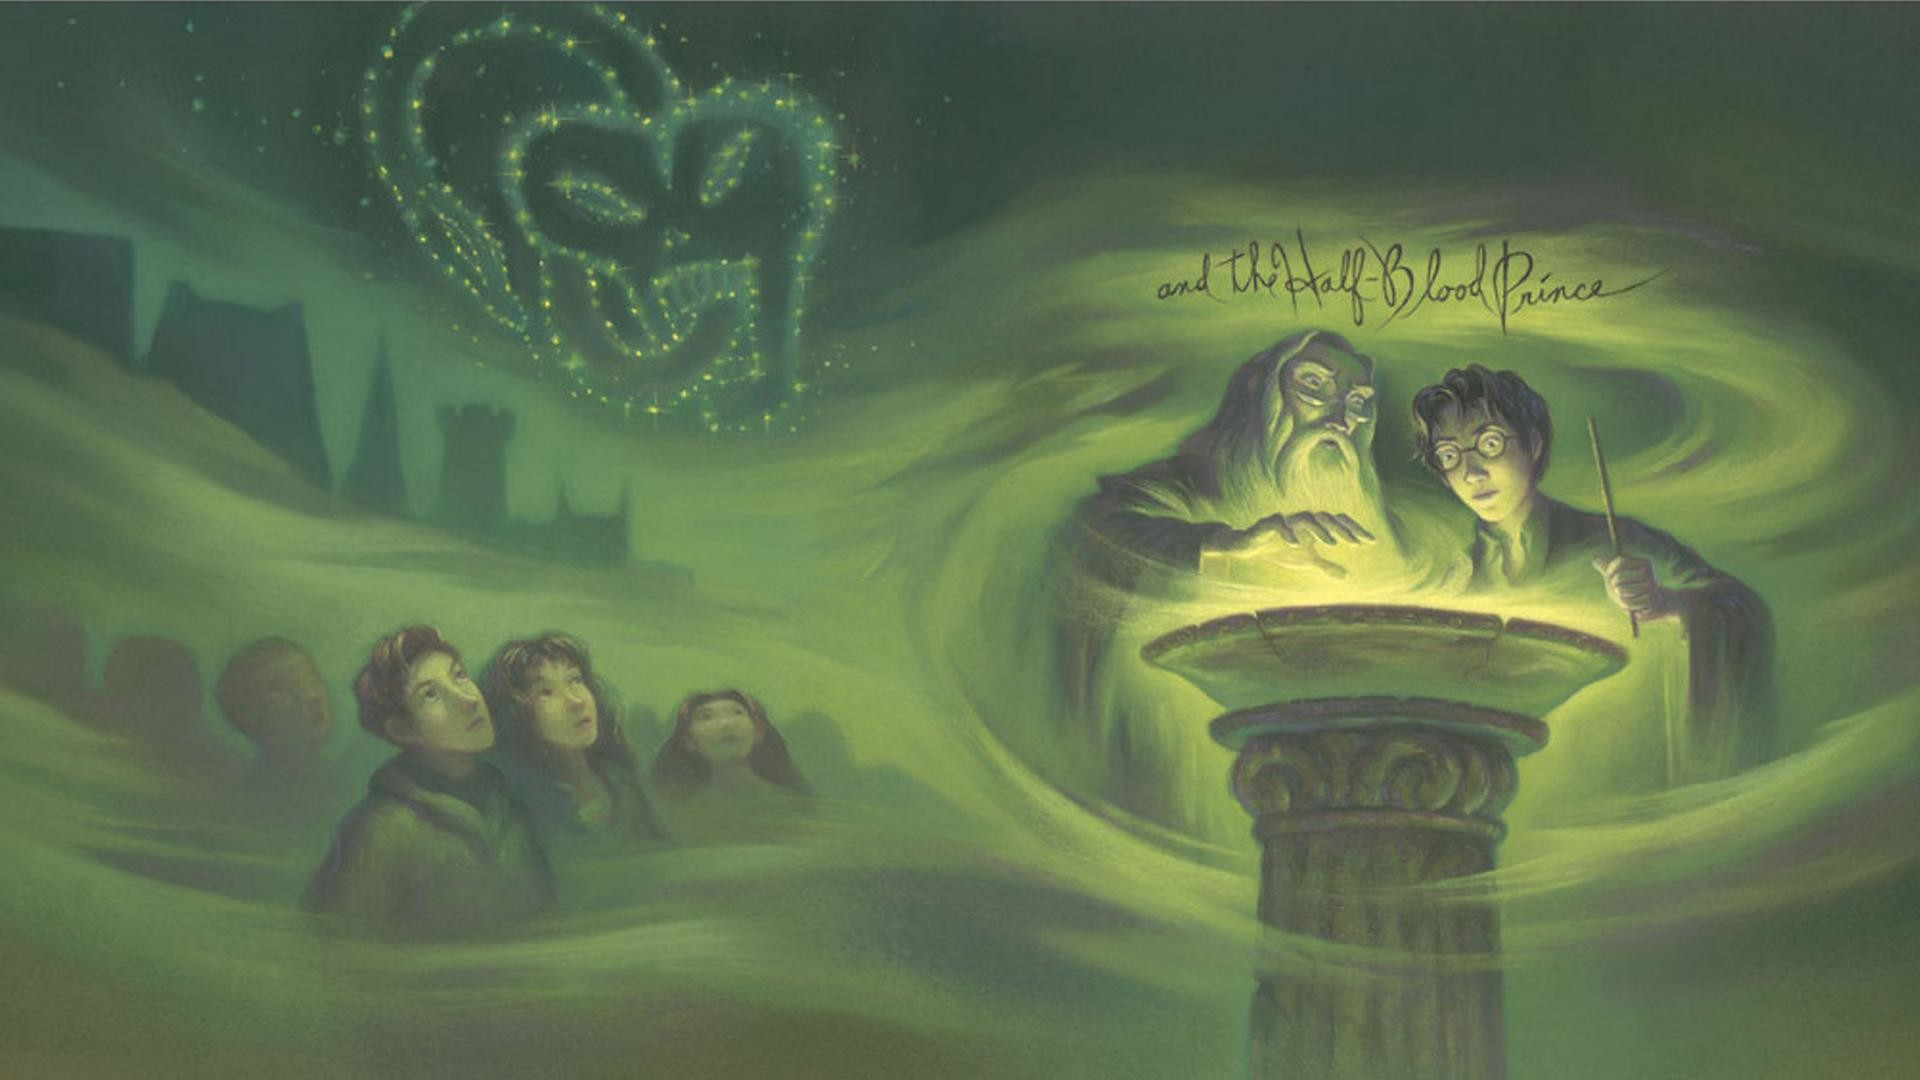 Res: 1920x1080, Harry Potter and the Half-Blood Prince